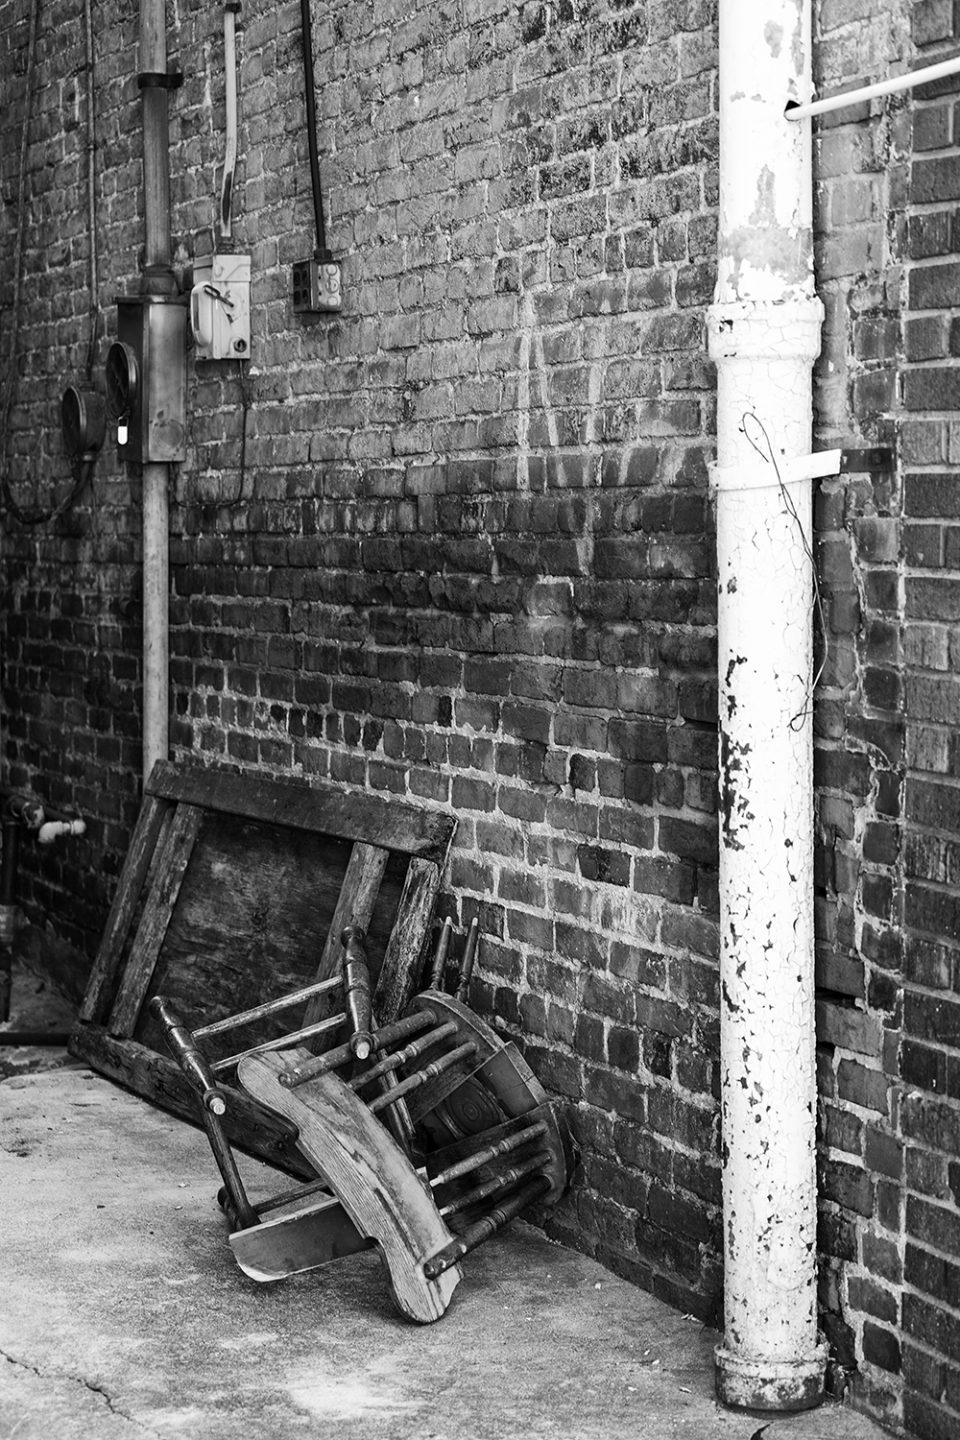 Broken chair in a Hopkinsville alley. Black and white photograph by Keith Dotson.